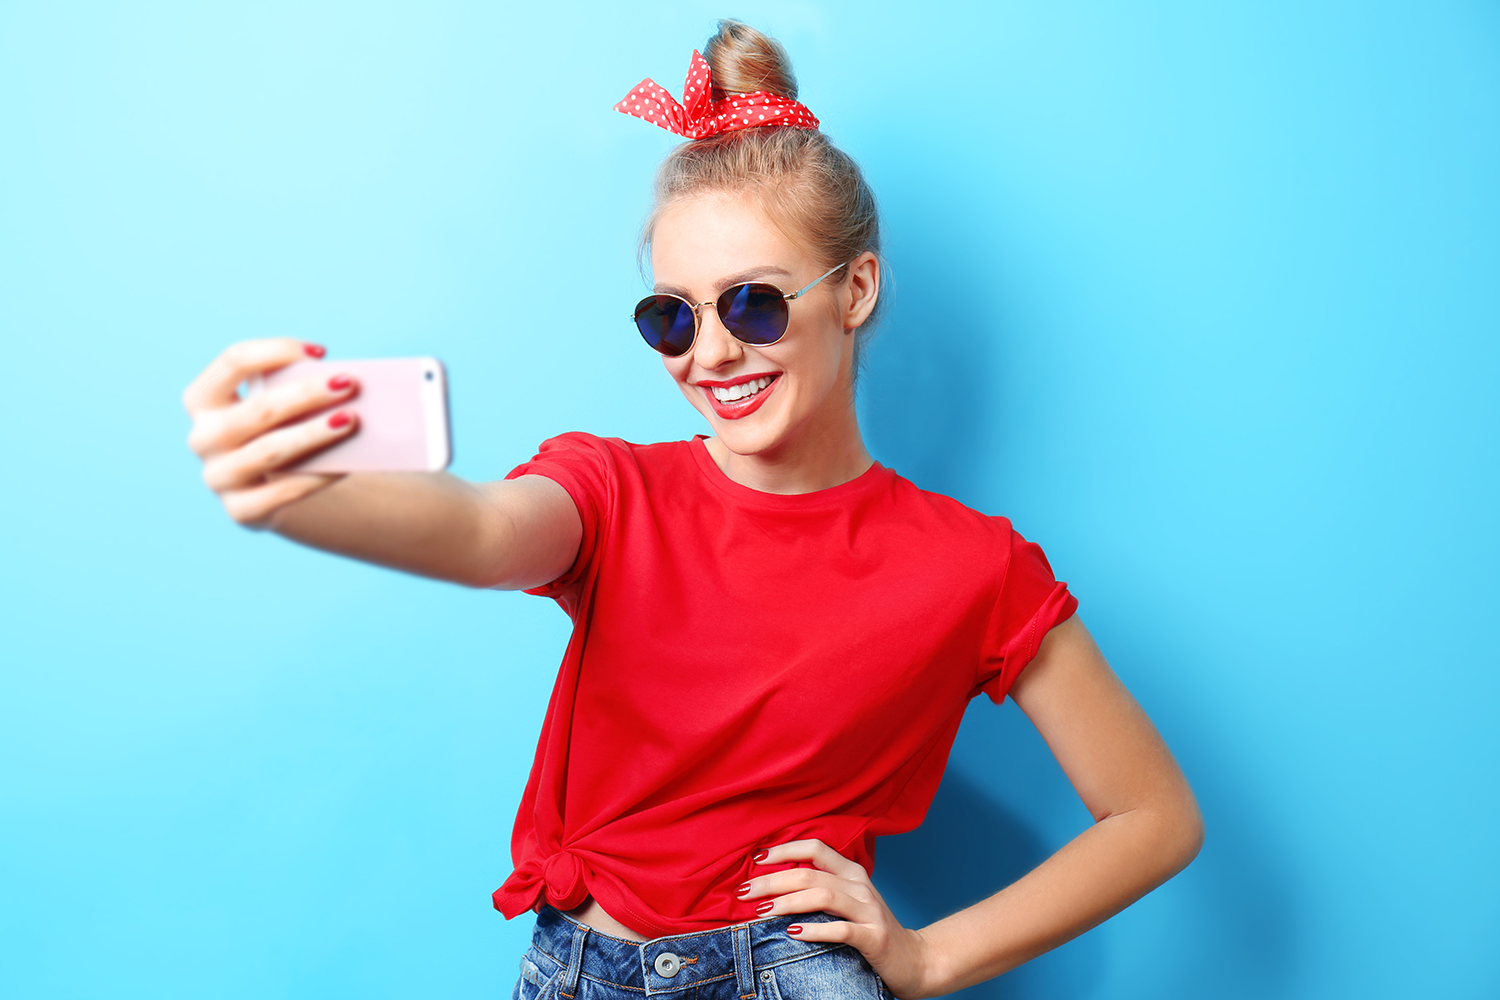 Gen Z - The New Customer Base Poised To Impact The Beauty Industry